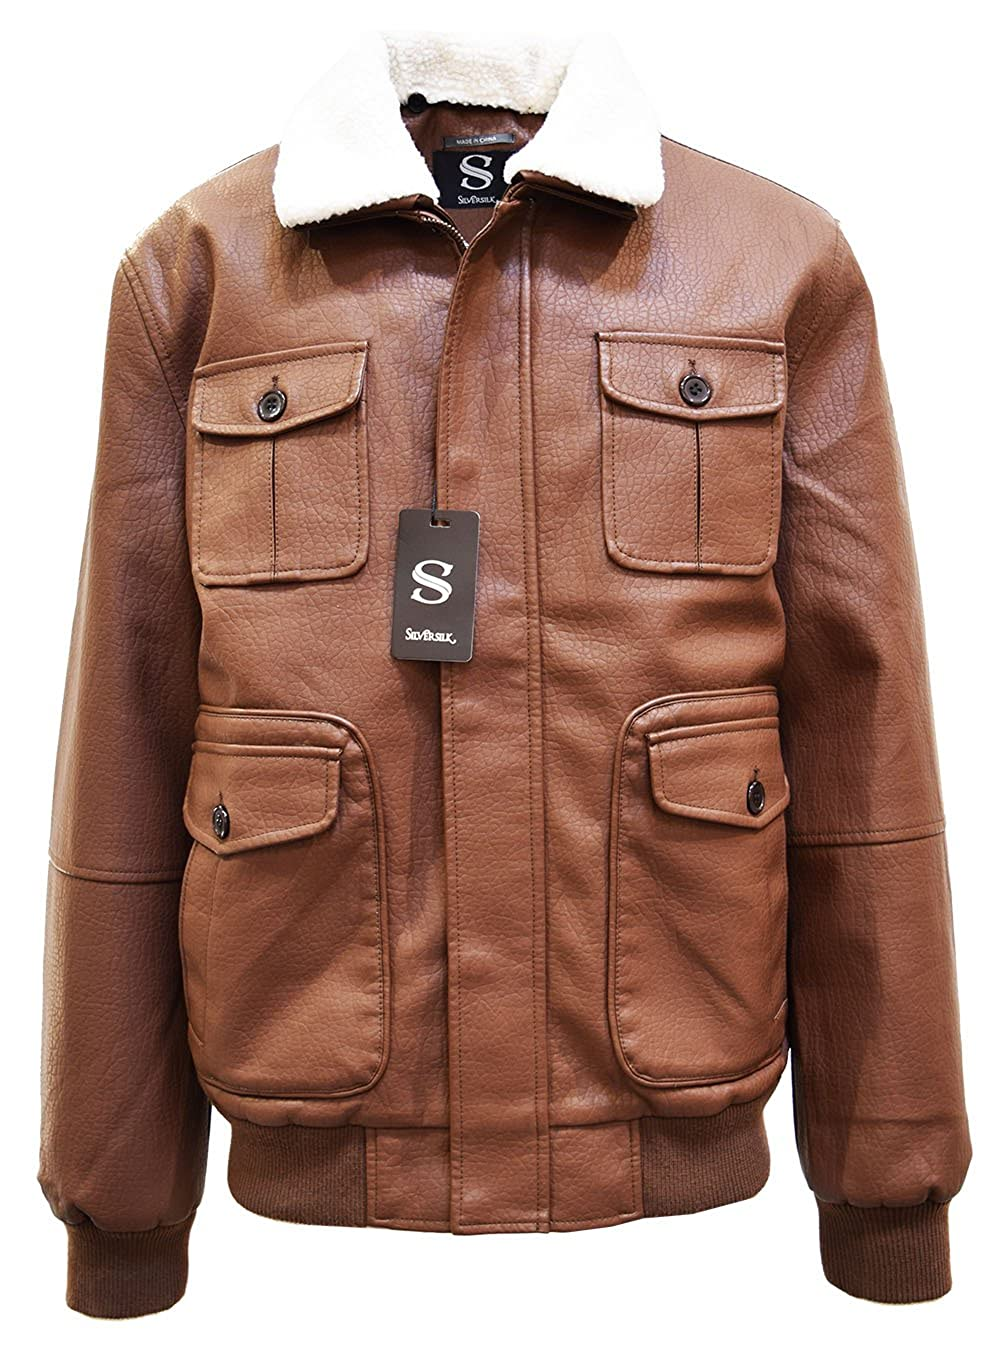 Men's Vintage Style Coats and Jackets BIg Tall SILVERSILK Mens PU Leather Bomber Jacket W/Sherpa Collar $69.00 AT vintagedancer.com